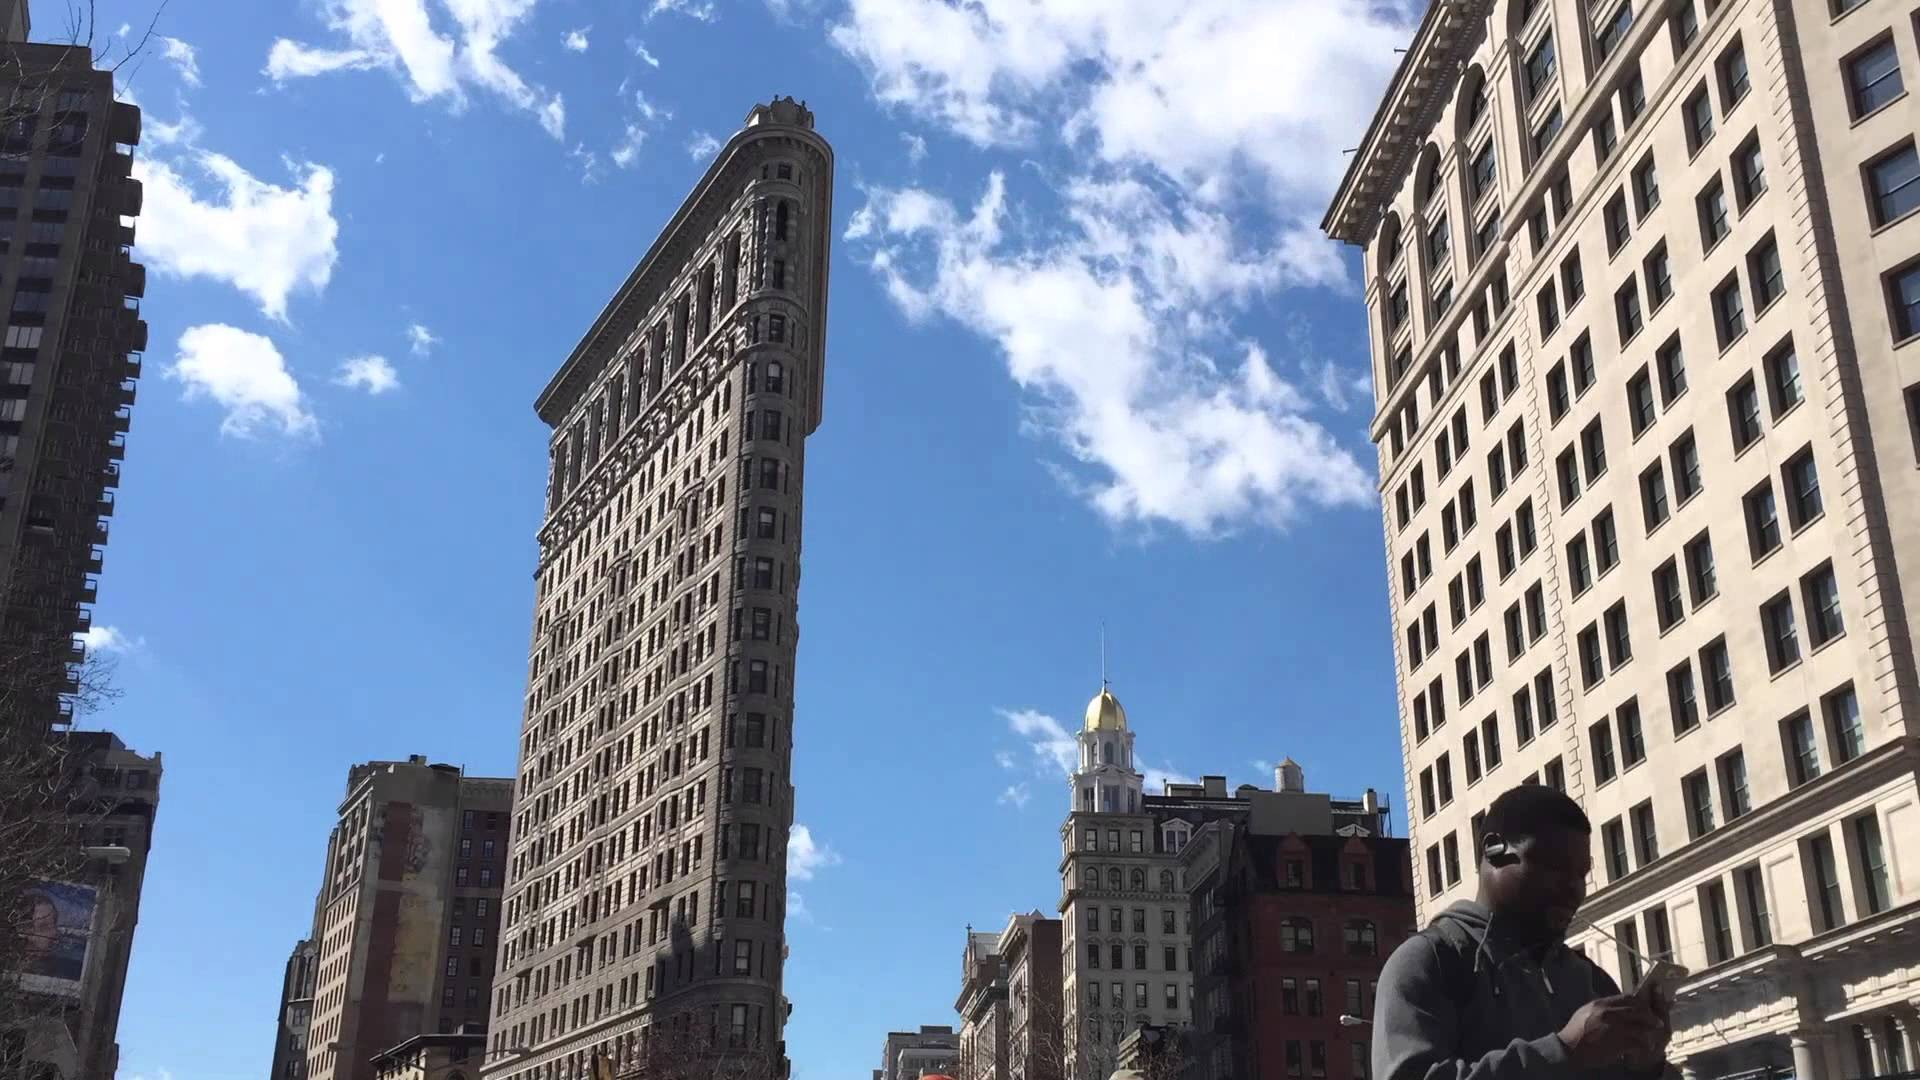 Interesting Time Lapse Video Shows The Flatiron Building